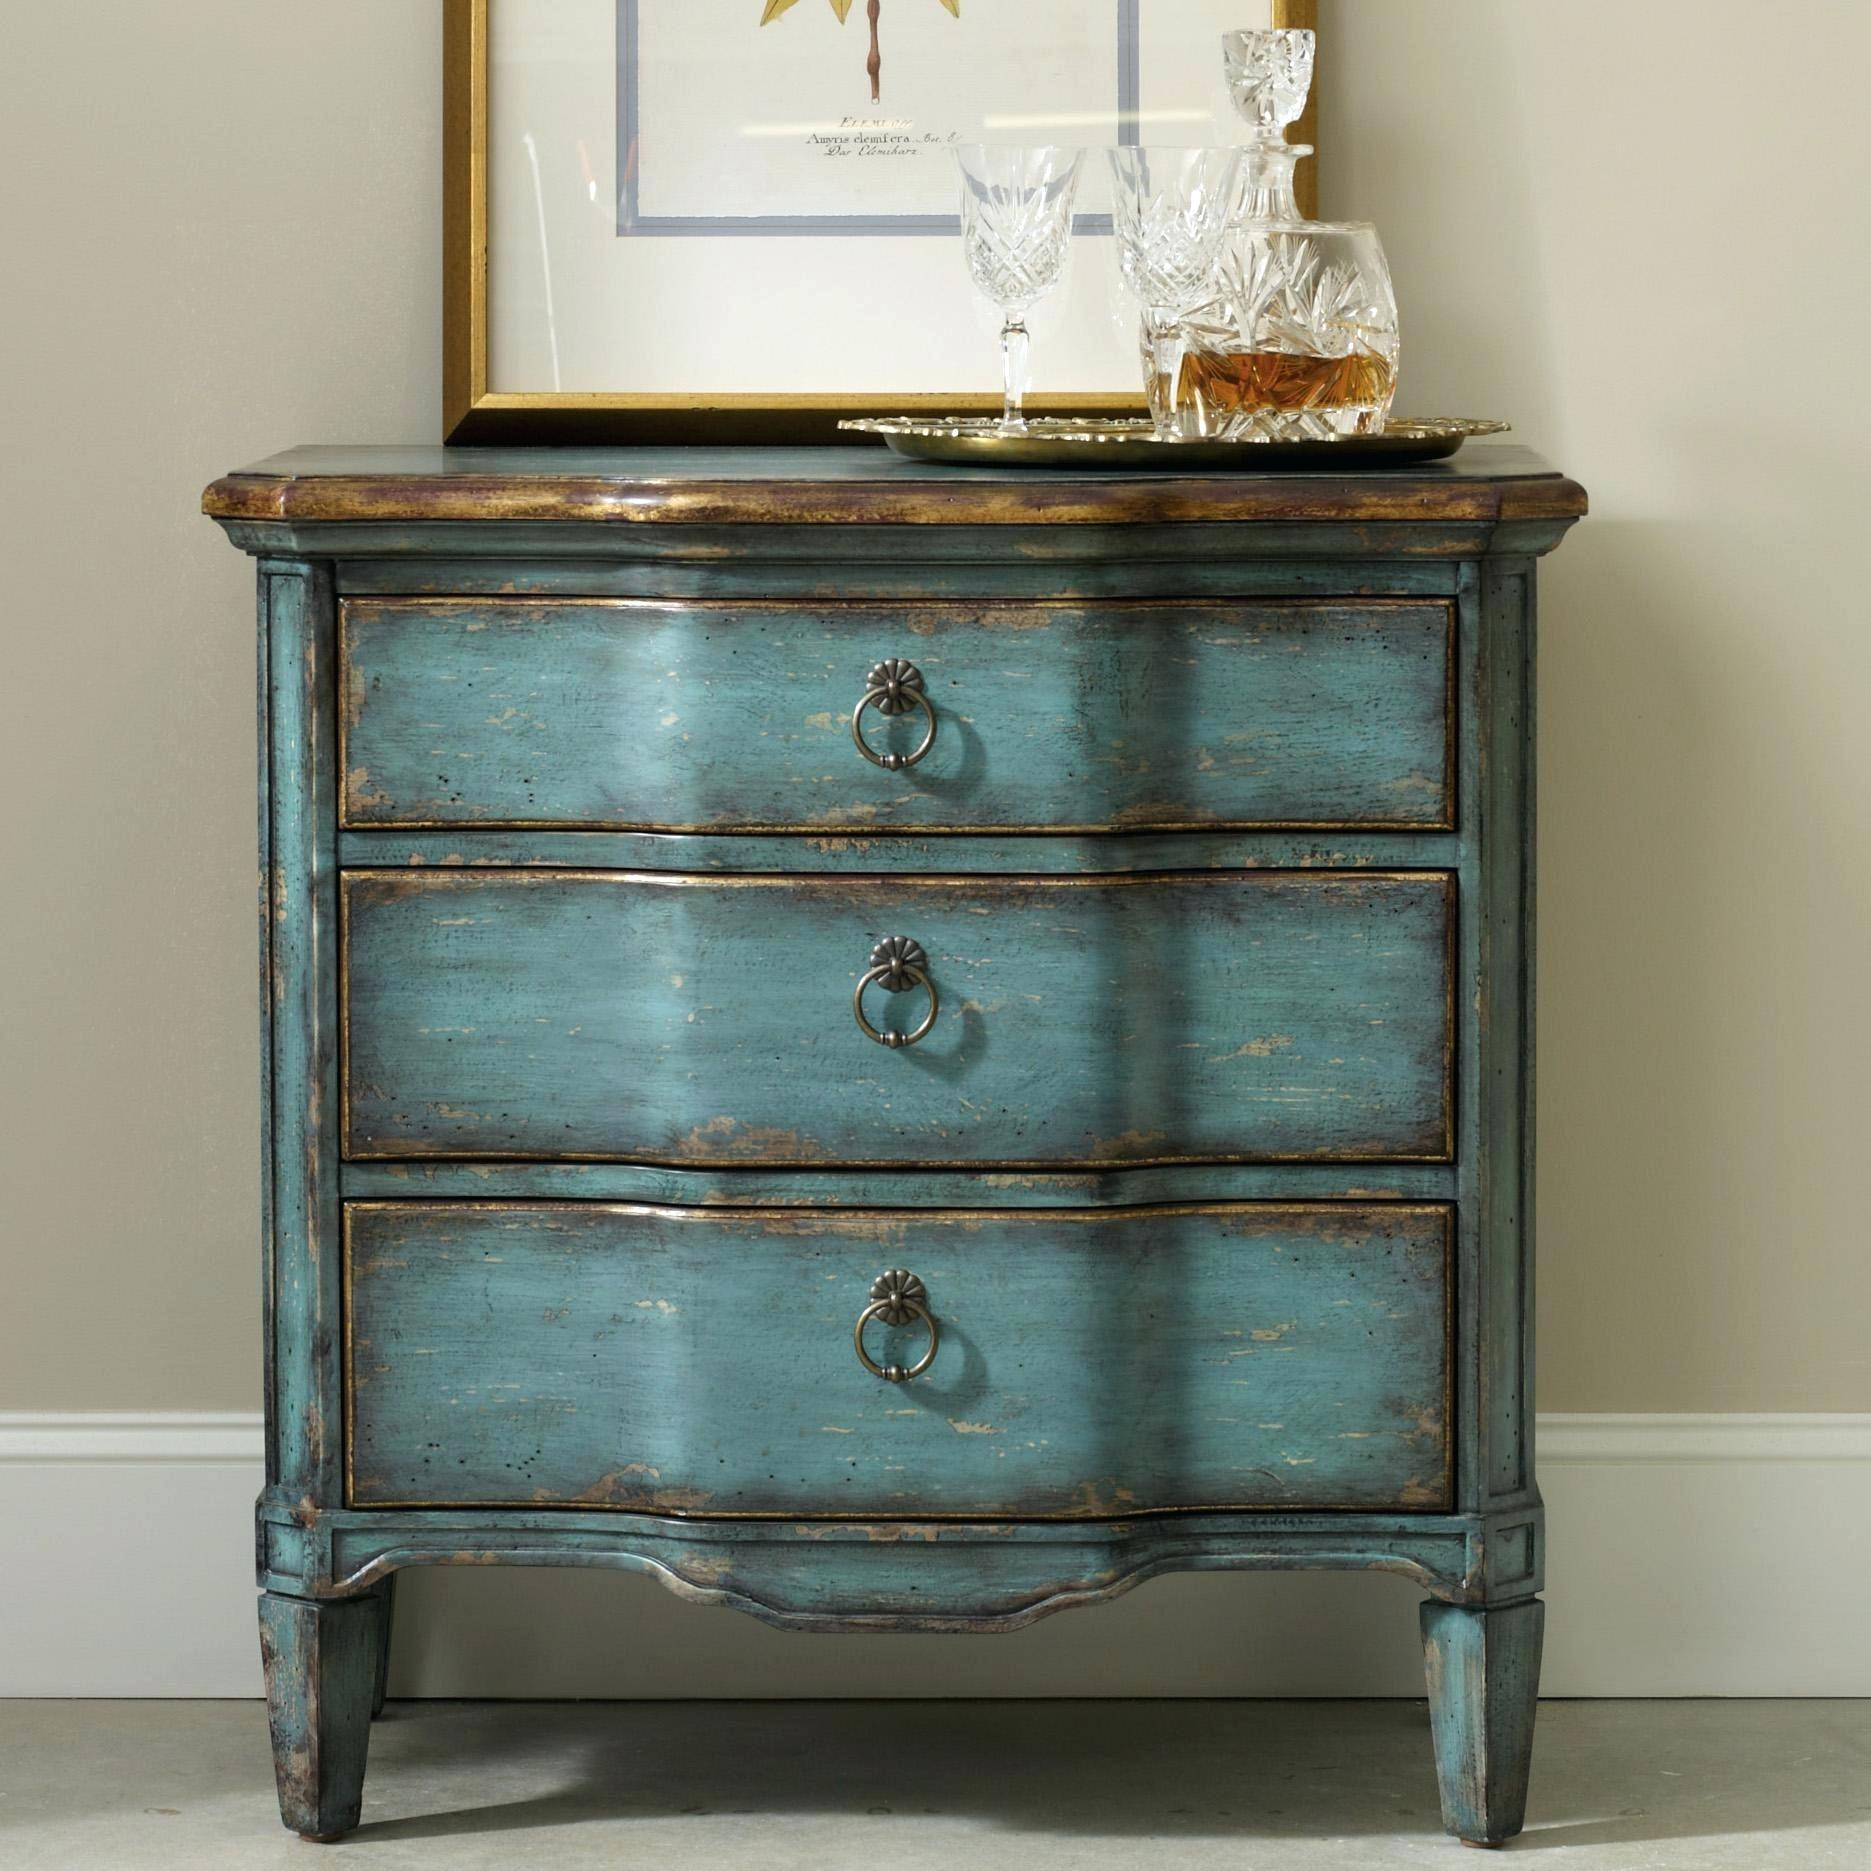 accent drawers whiskey oak drawer chest console table hooker furniture living room accents three turquoise with shaped front and doors white grey door pub garden small inches high